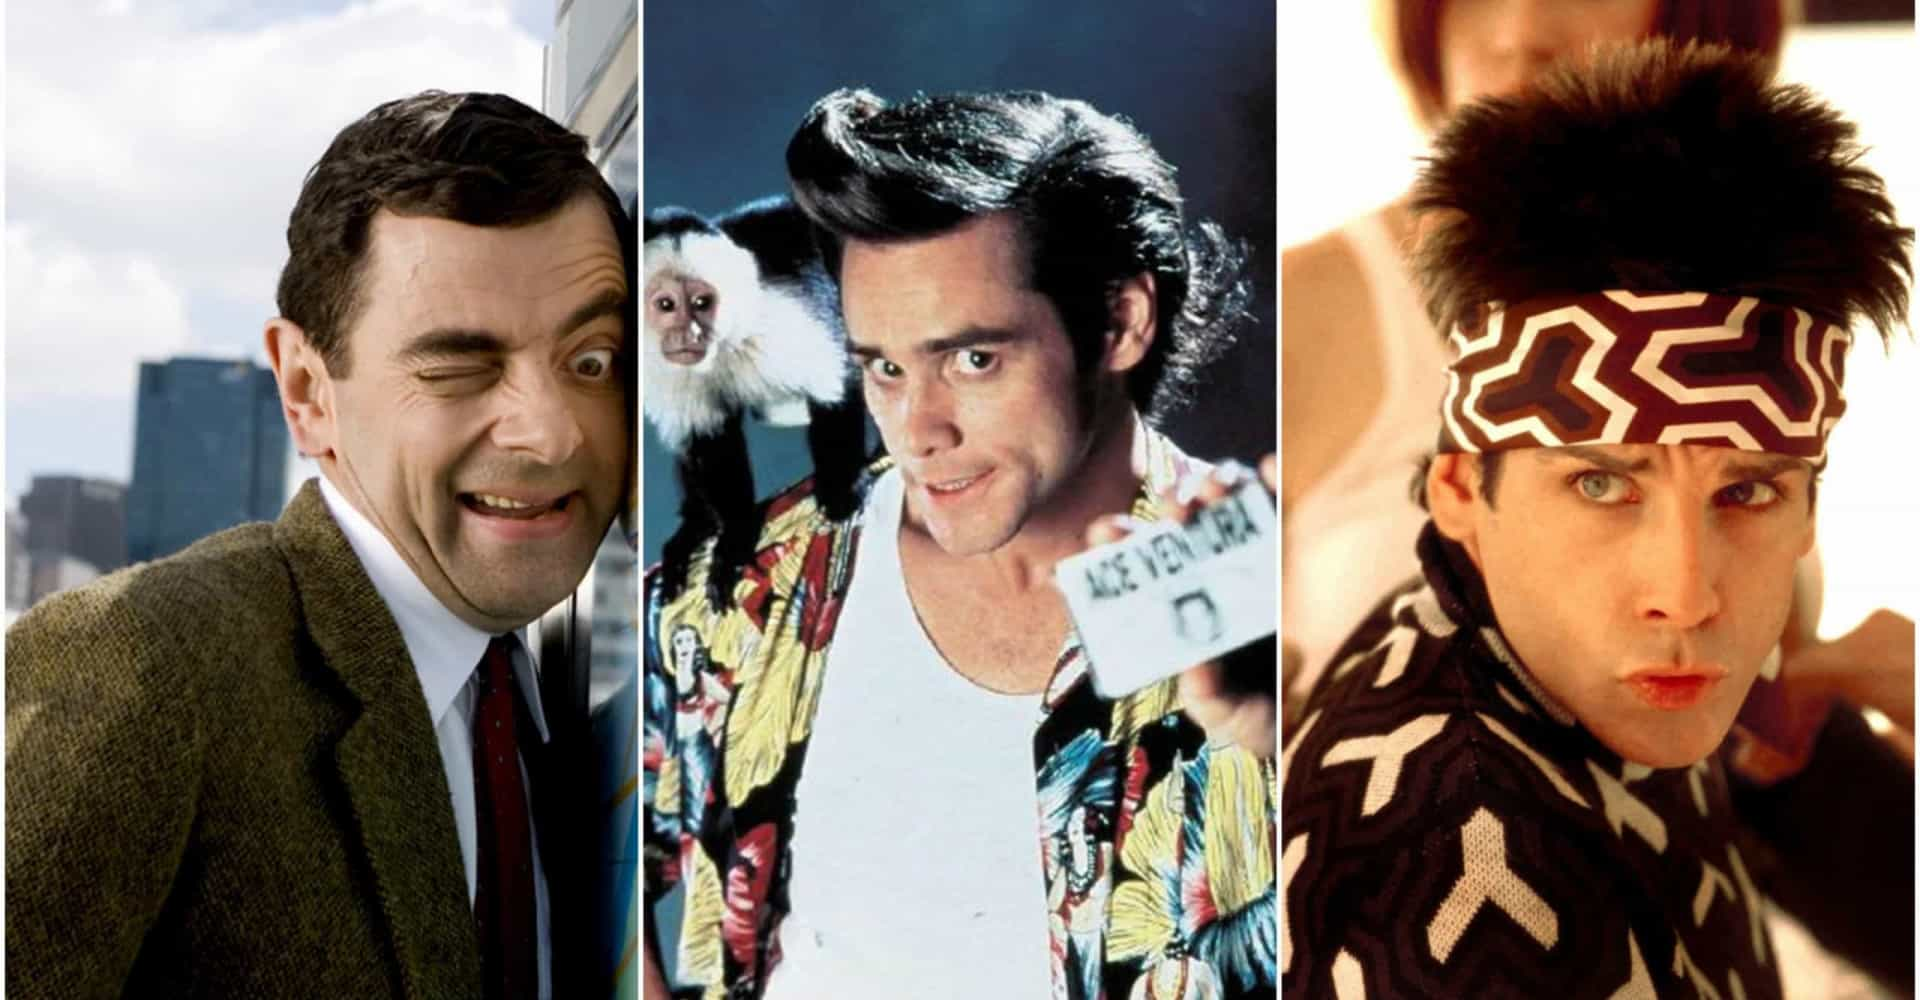 The craziest, funniest movie characters of all time